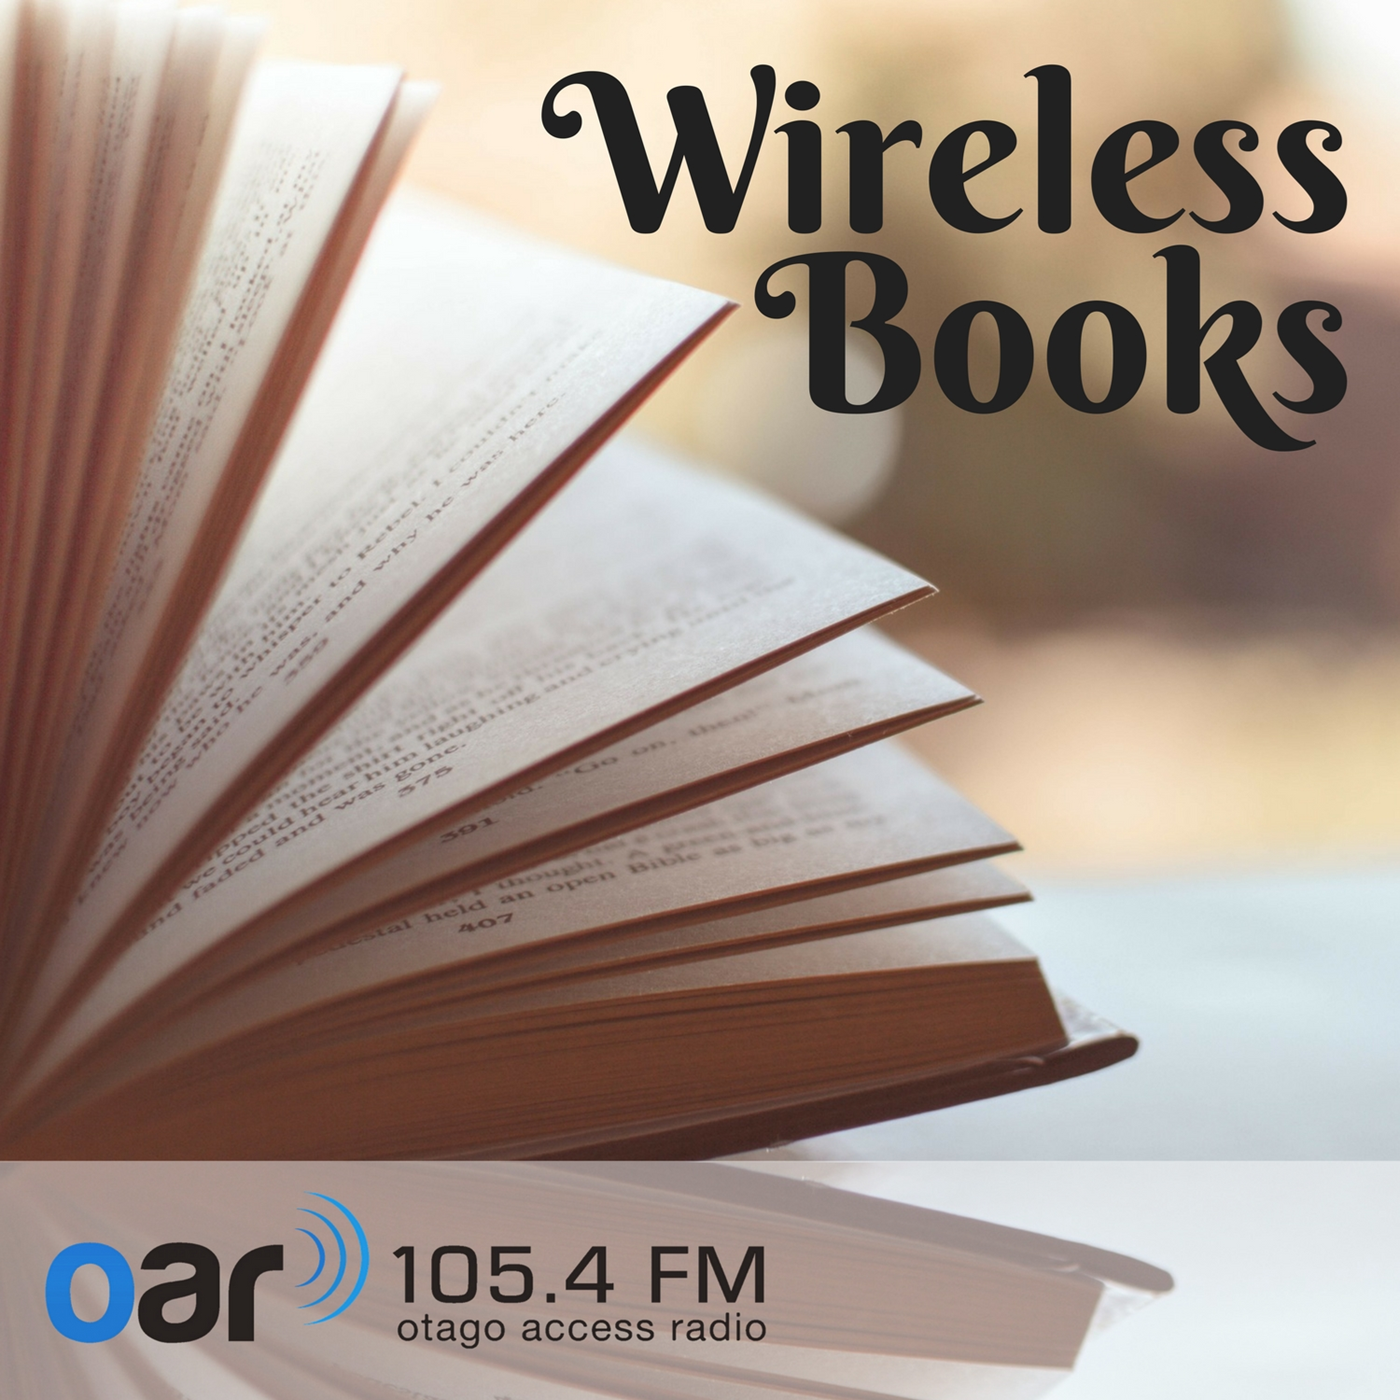 Wireless Books - 16-02-2019 - Queen Mary's biography